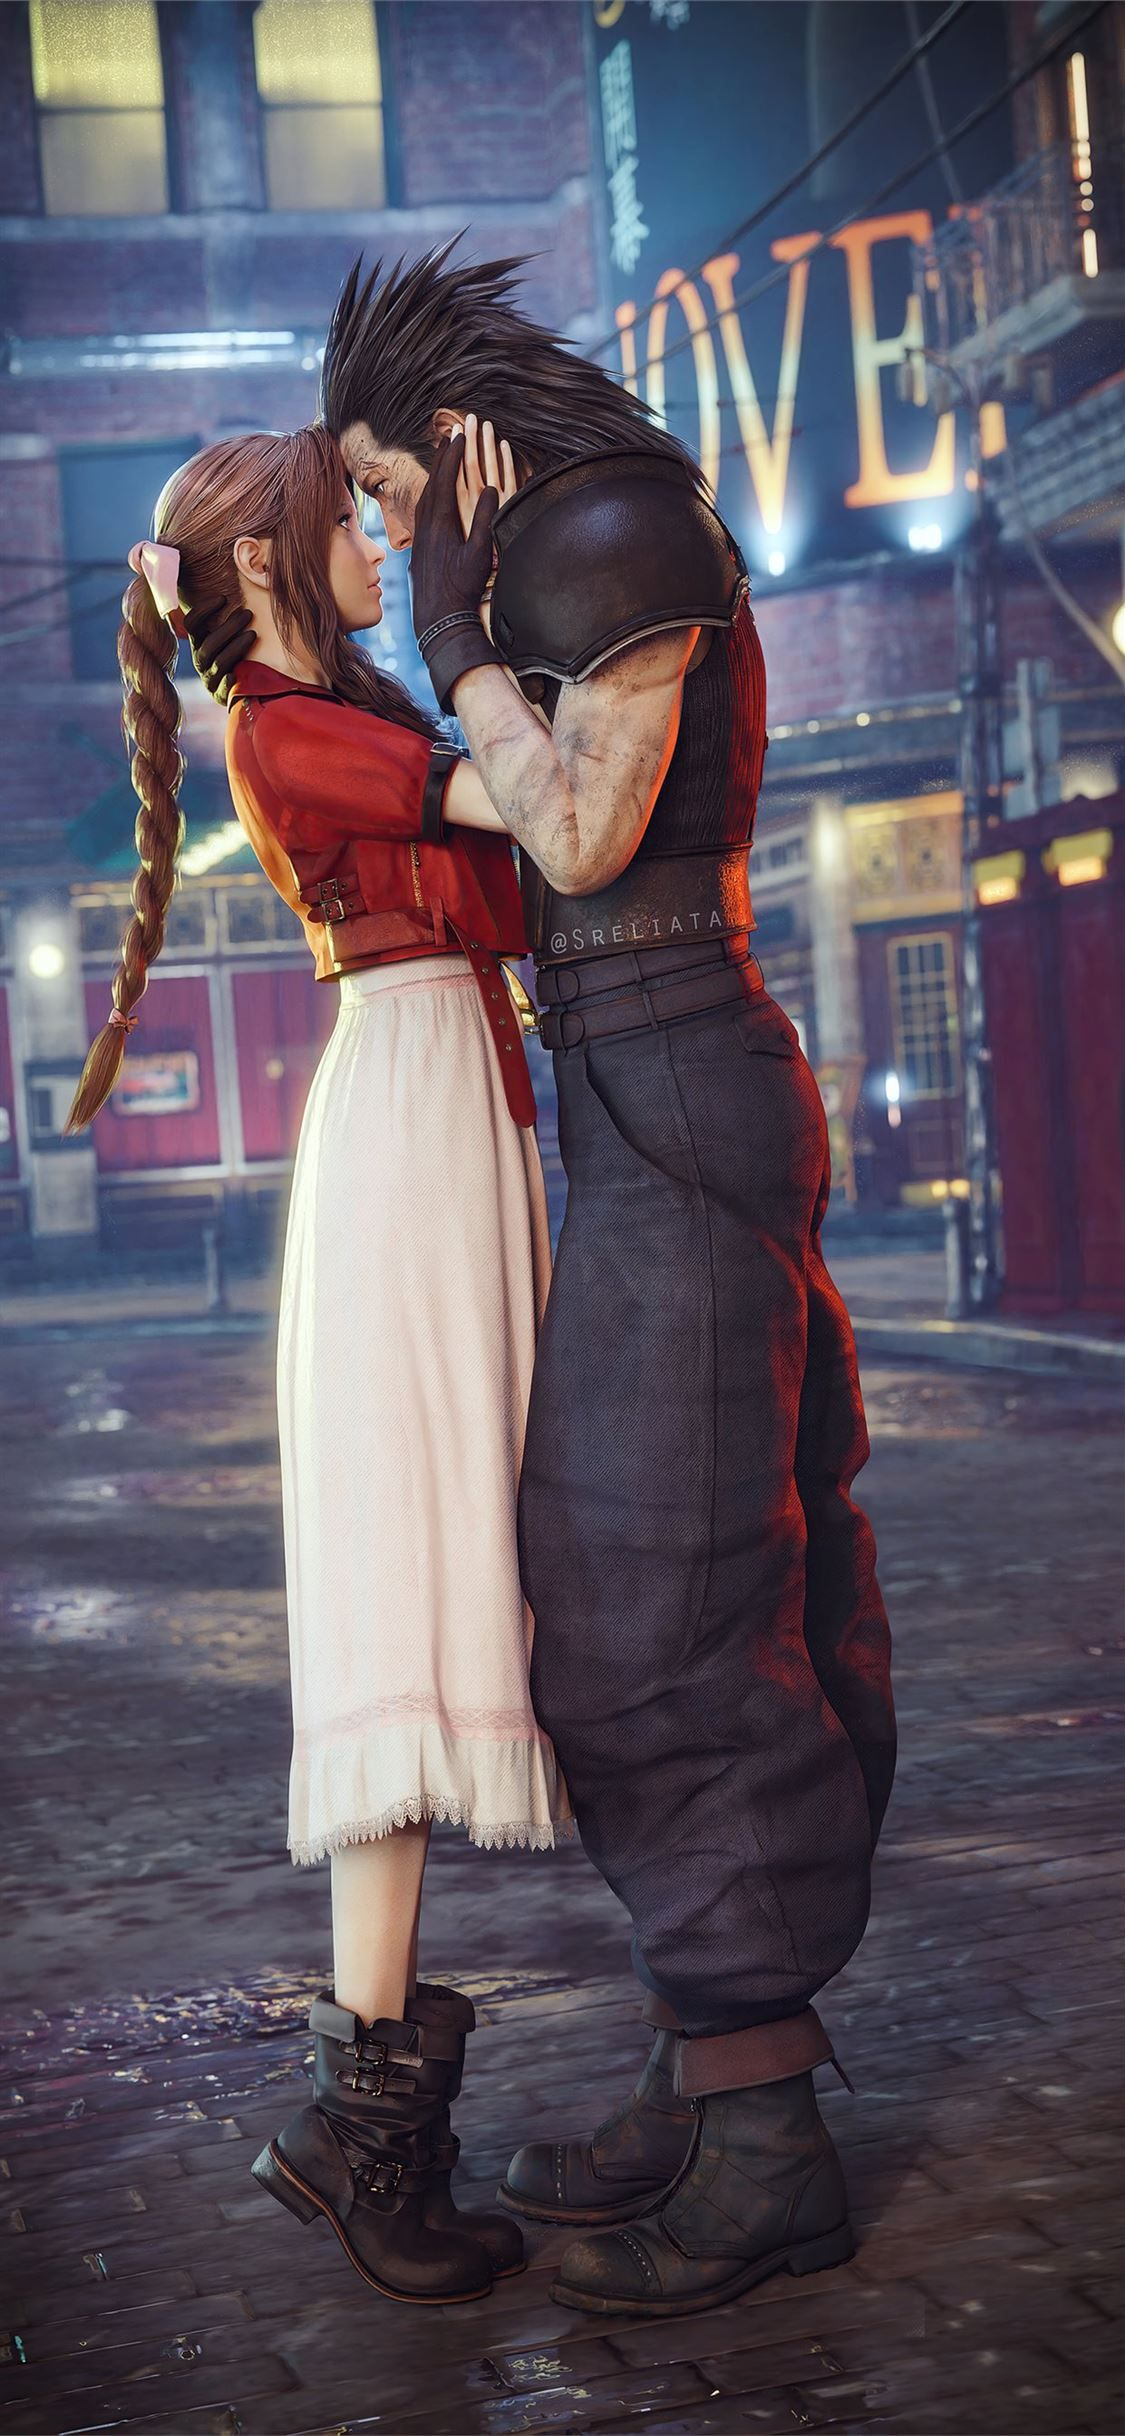 Aerith Gainsborough And Cloud Strife Final Fantasy Finalfantasy 2020games Games 4k Iphone1 In 2020 Final Fantasy Art Final Fantasy Vii Remake Final Fantasy Vii